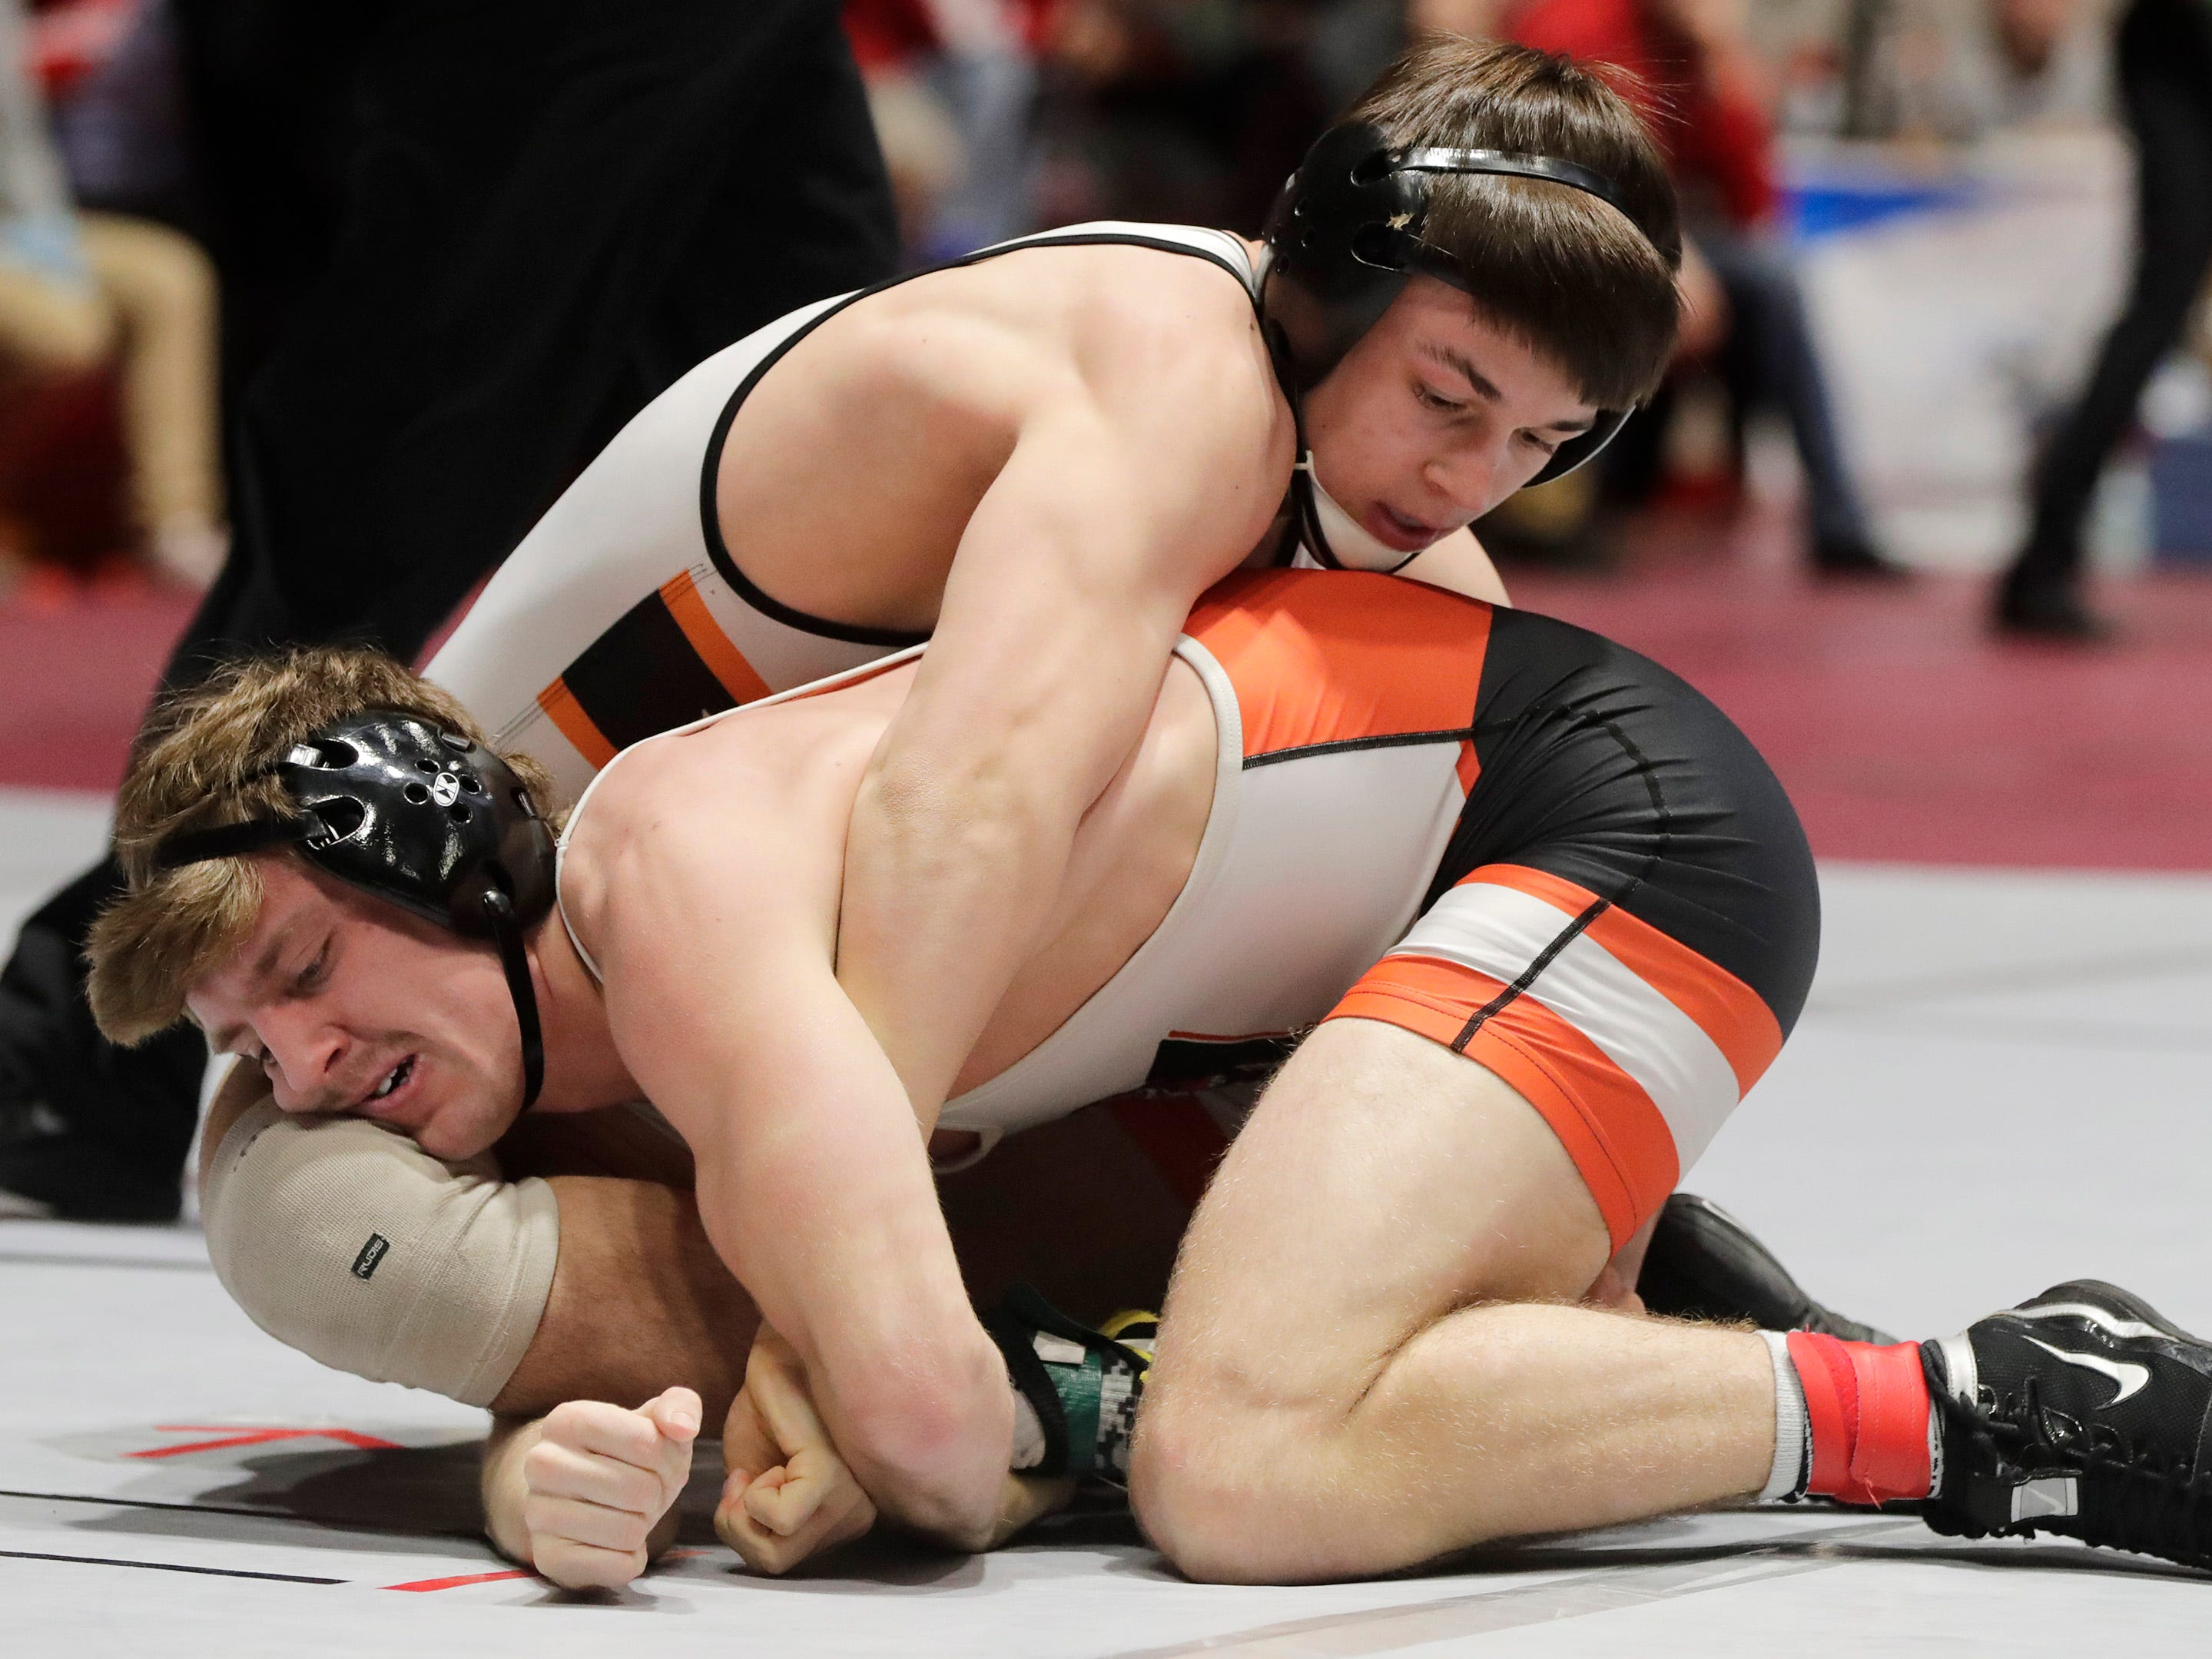 Marshfield's Caden Pearce, left, wrestles Burlington's Cody Welker in a 145-pound match, Friday, March 1, 2019, in Madison, Wis.